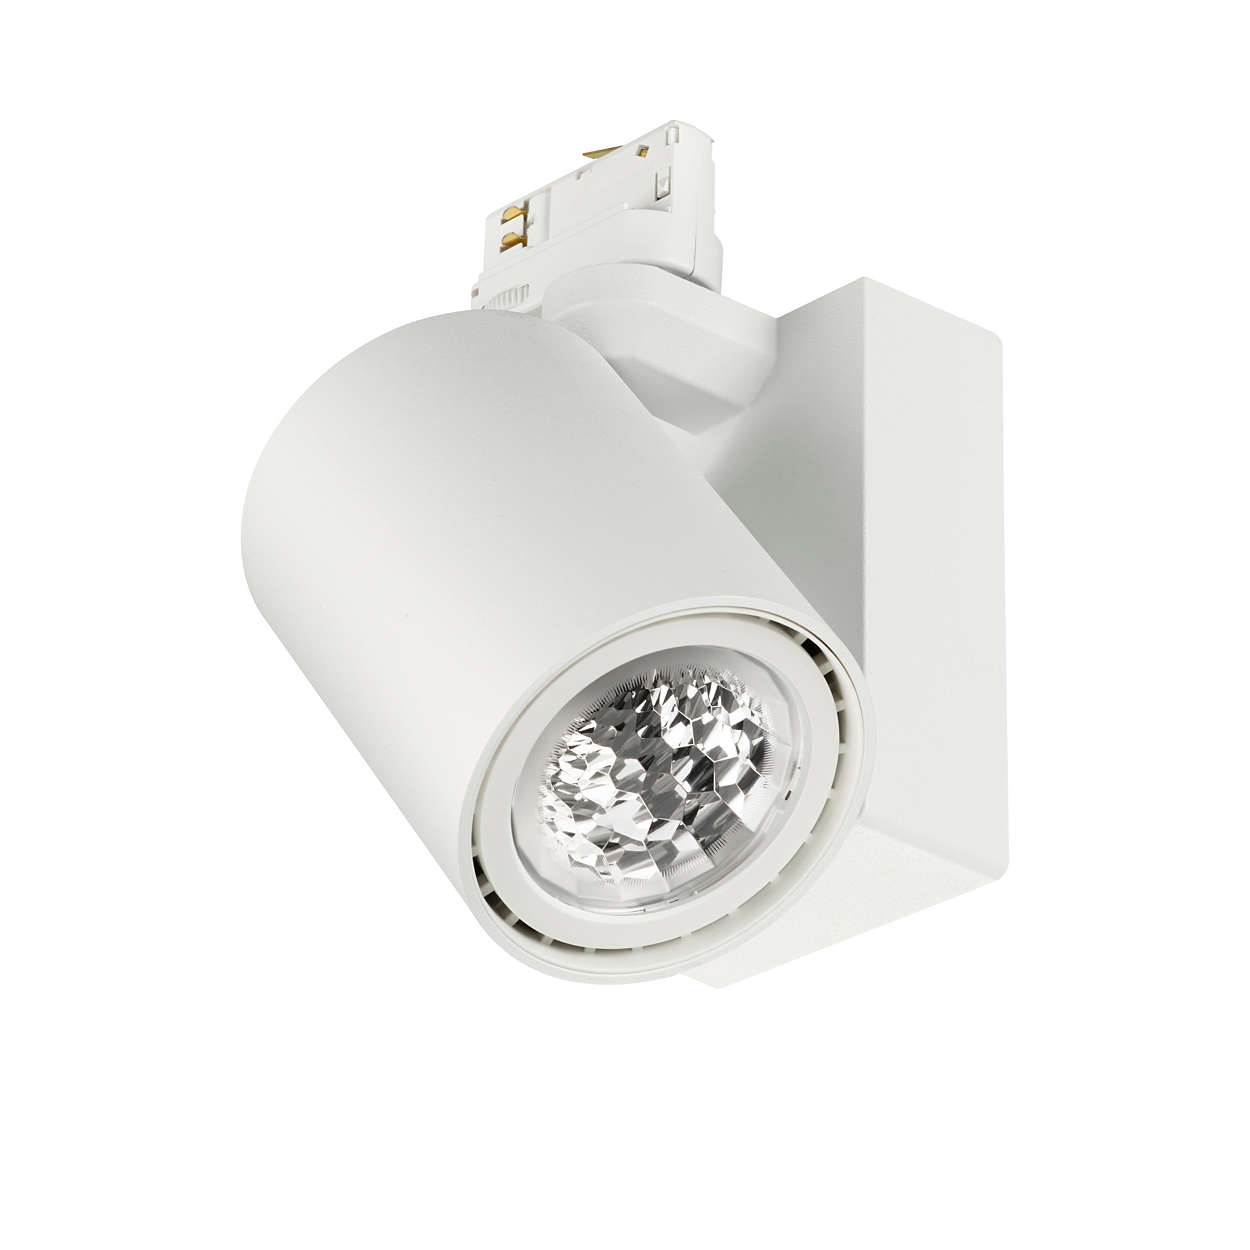 ProAir – an unrivalled combination of light quality and efficiency